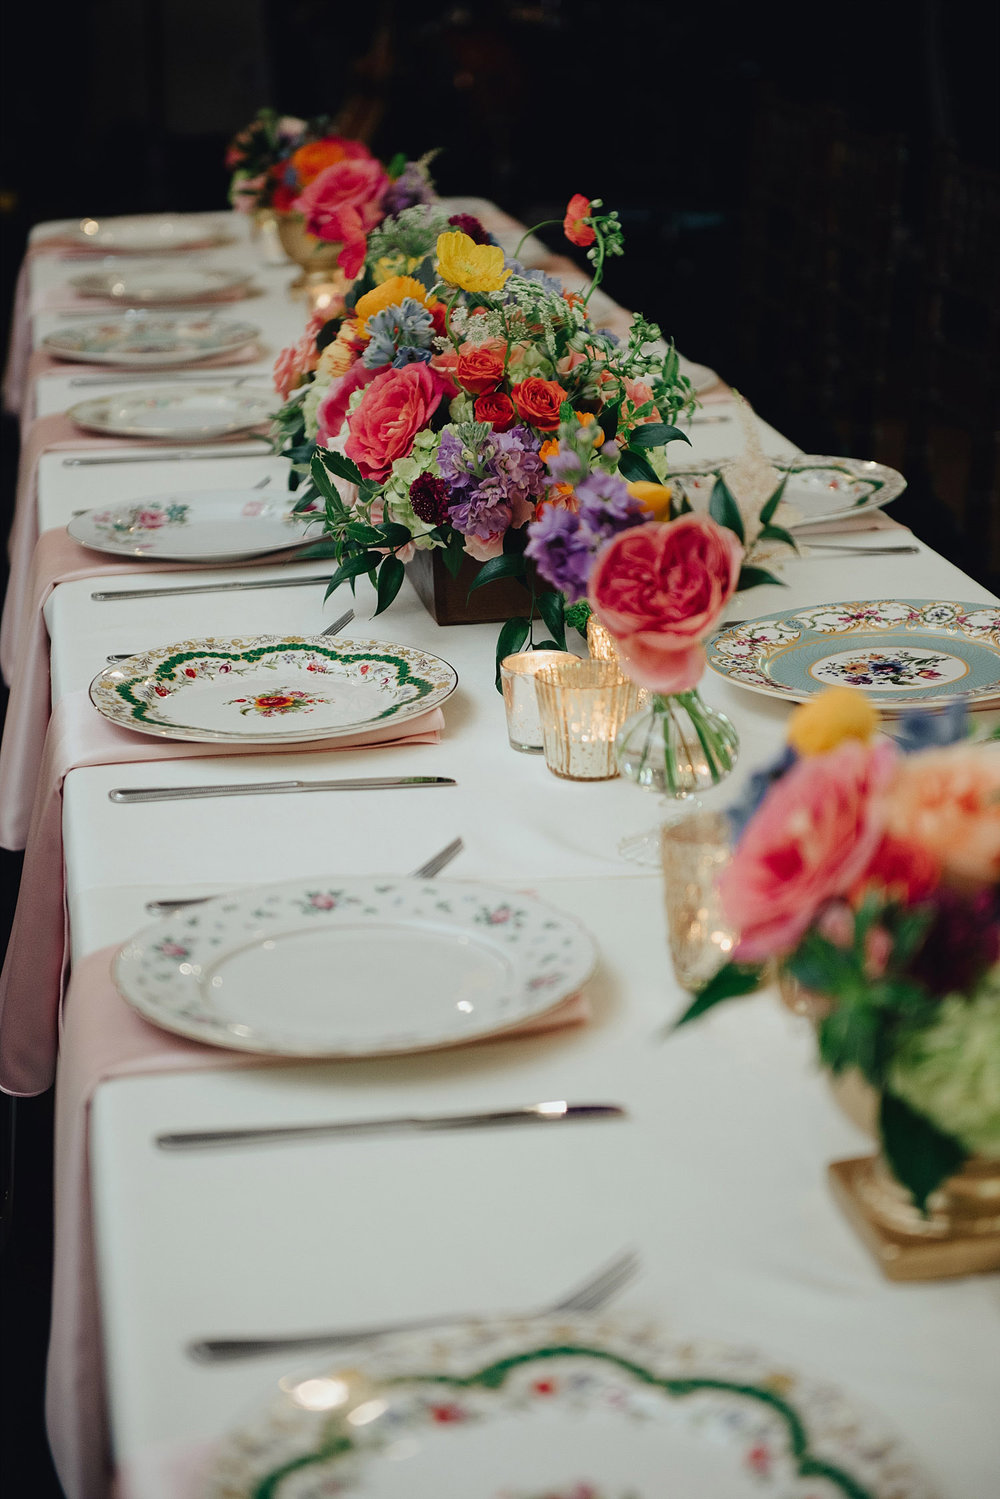 The Orchard Azle wedding head table with vintage plates